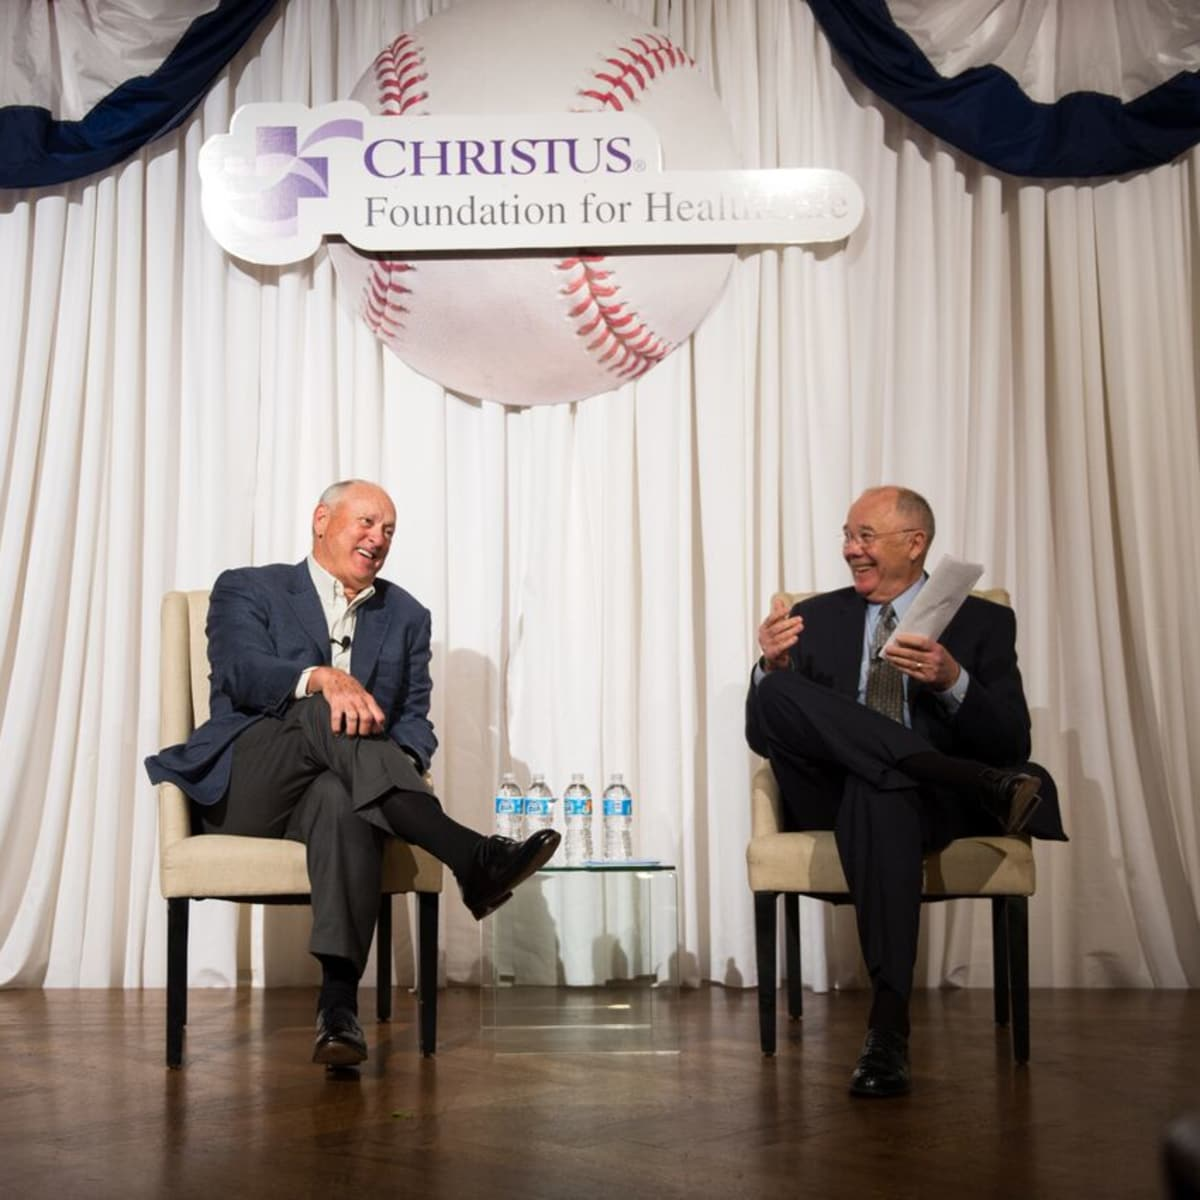 Christus Foundation Luncheon, March 2016, Nolan Ryan, Steve Smith